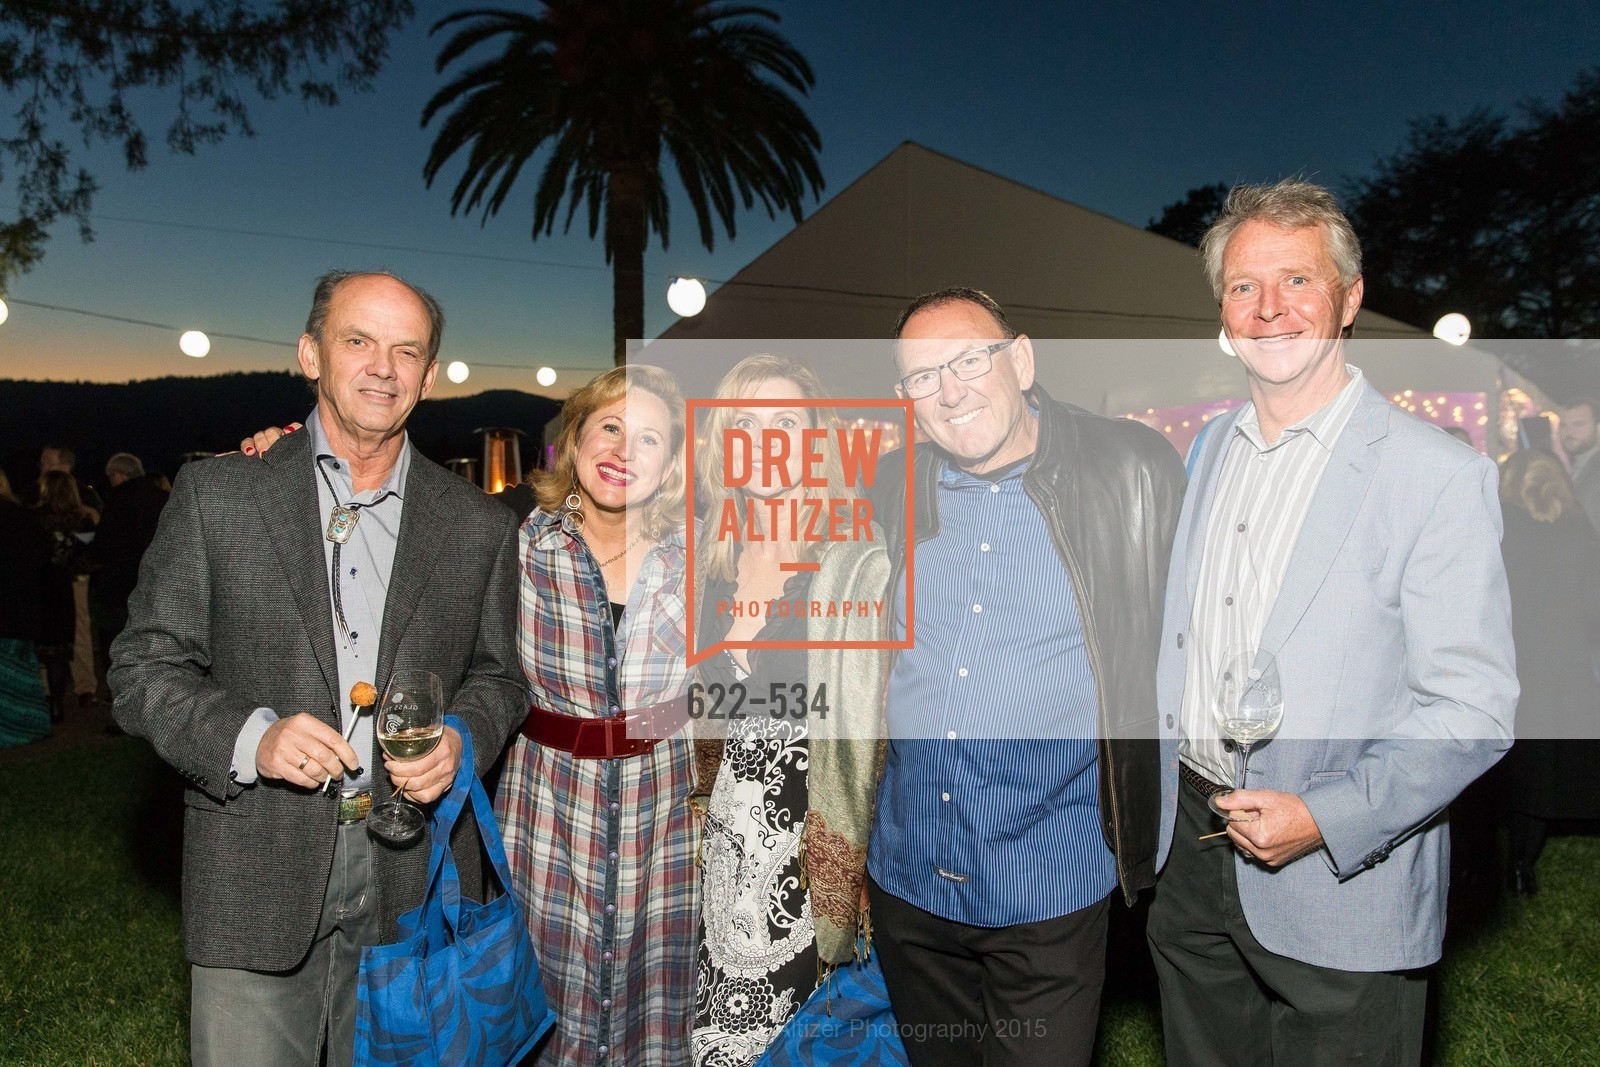 Jon Gates, Maria Cunningham, Taya Poitras, Mark Poitras, John Cunningham, Perfecting Pairings - Food, Wine and Stories, Chateau St Jean, Kenwood, November 14th, 2015,Drew Altizer, Drew Altizer Photography, full-service agency, private events, San Francisco photographer, photographer california